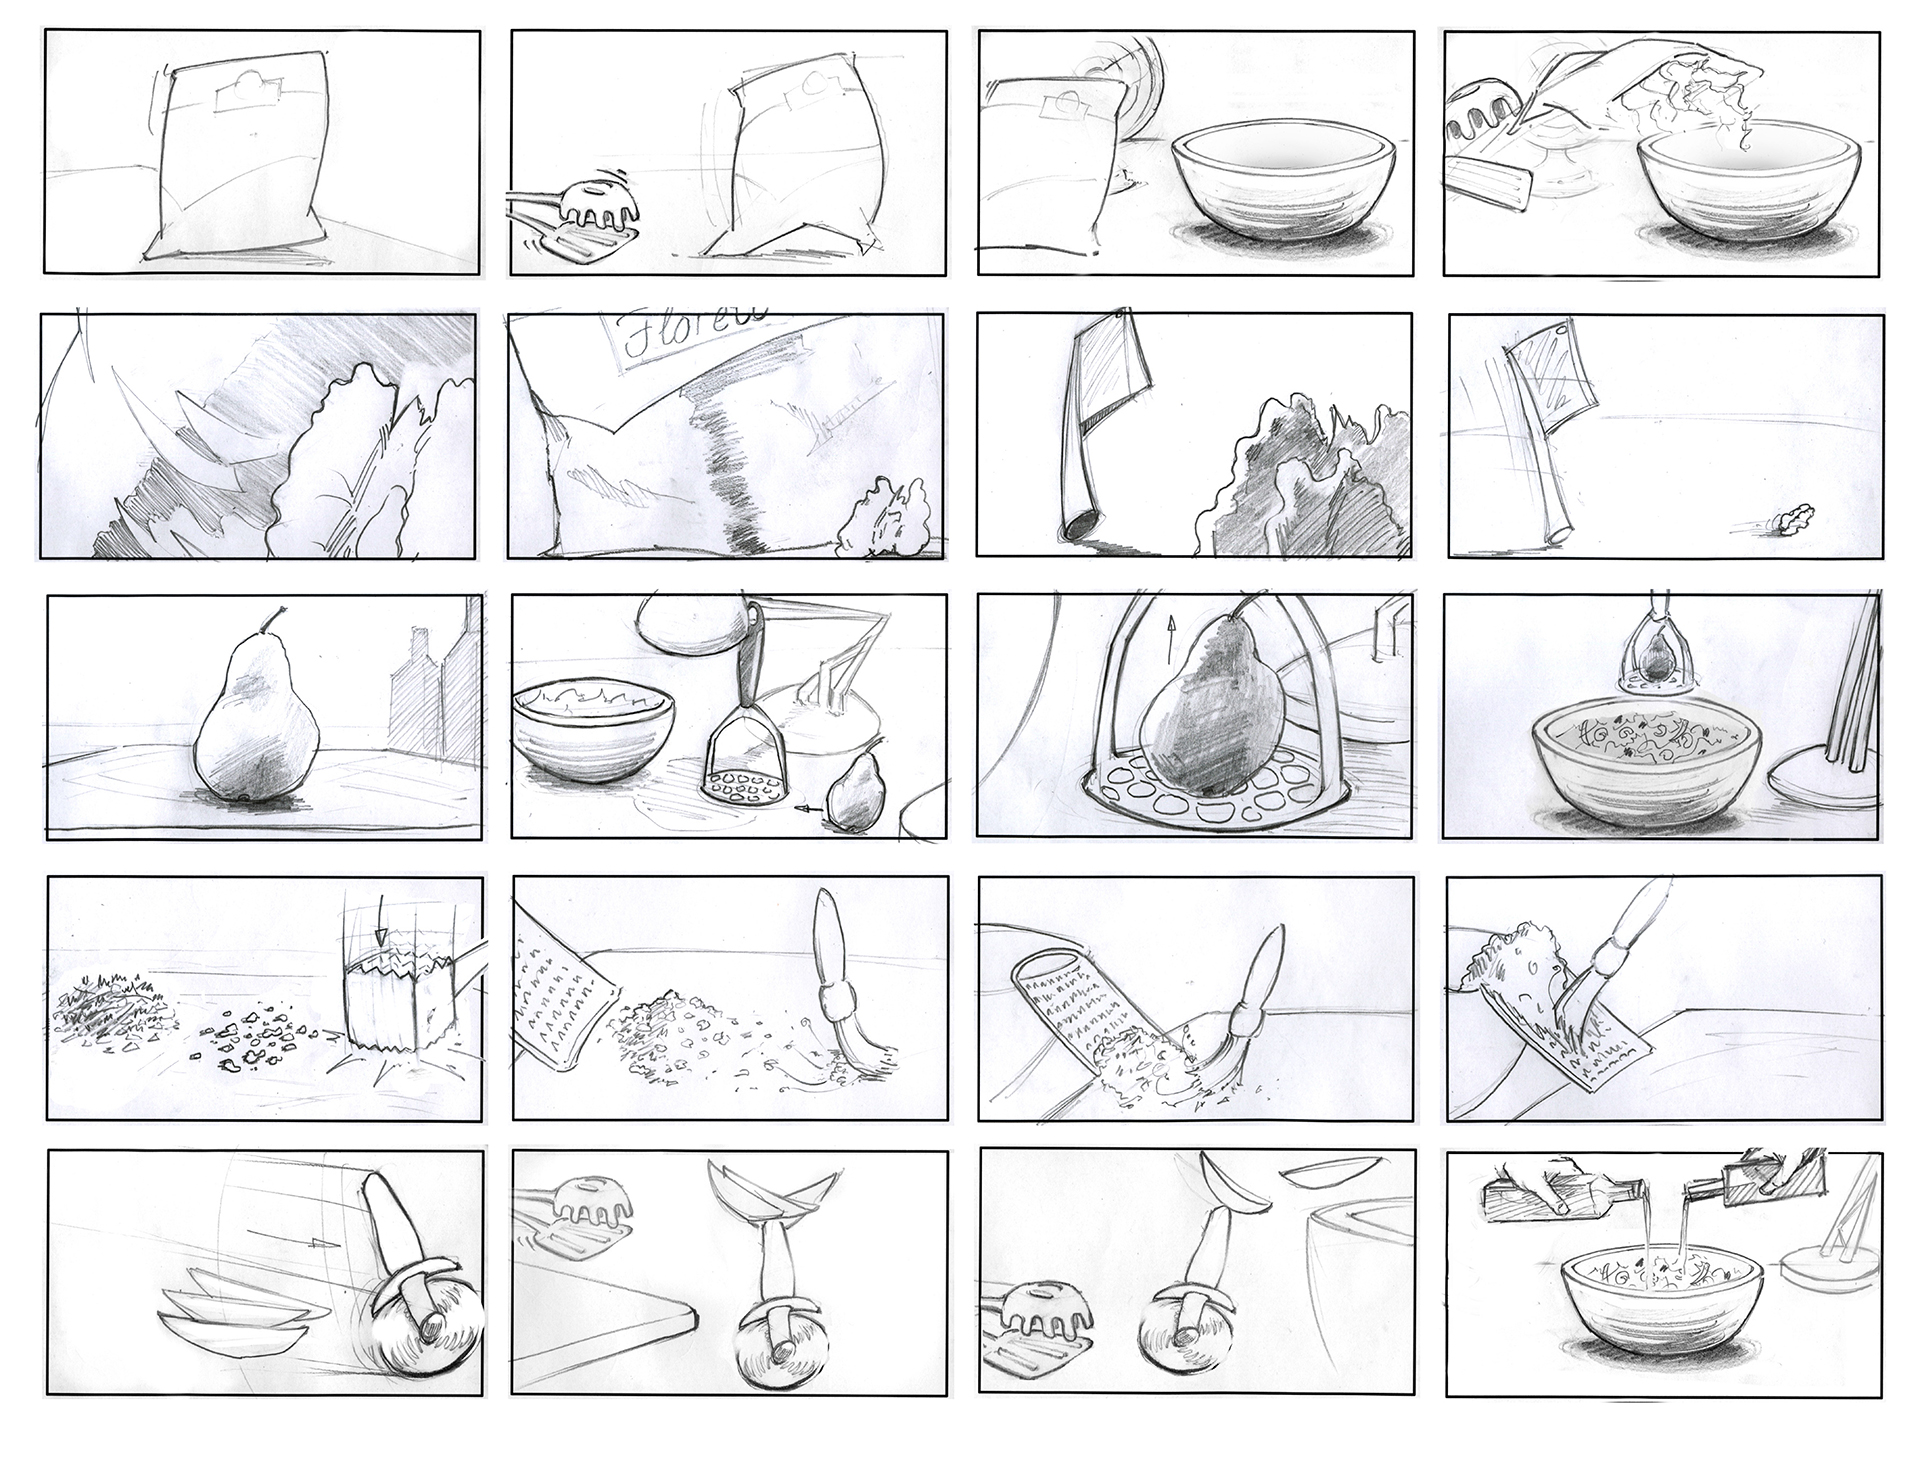 Jack Wright - Storyboard Artist - commercial storyboards